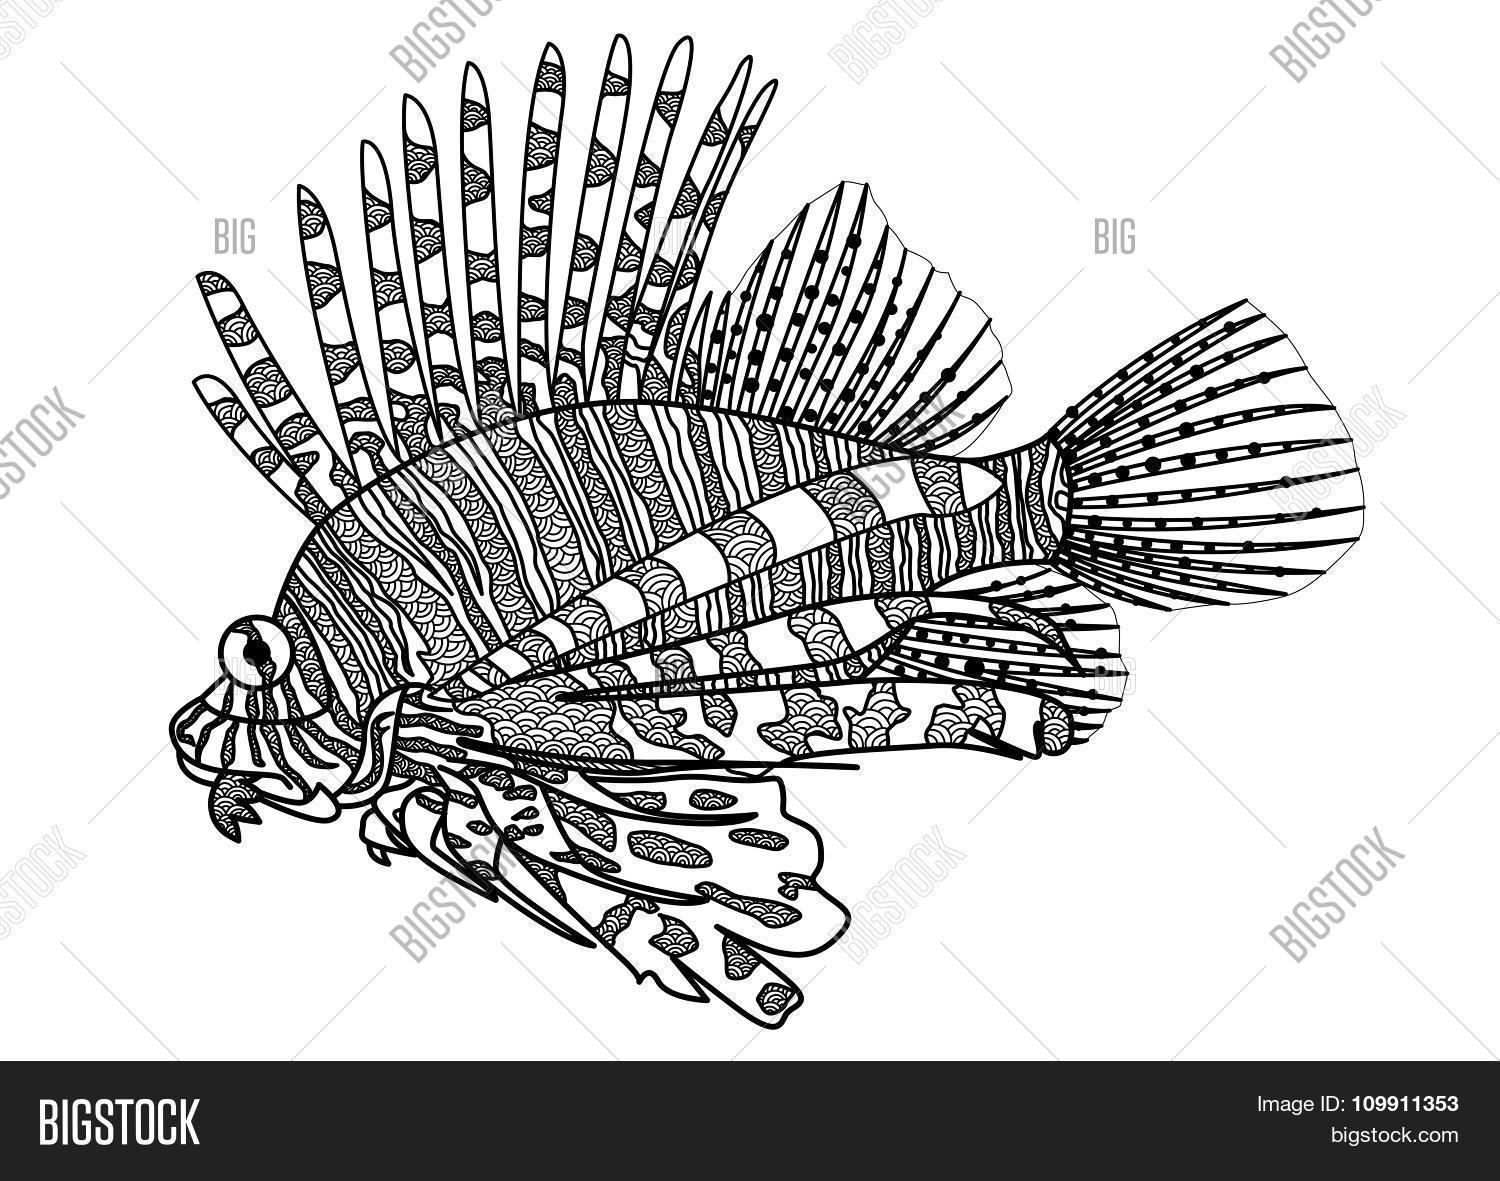 Lion Fish Coloring Vector & Photo (Free Trial) | Bigstock